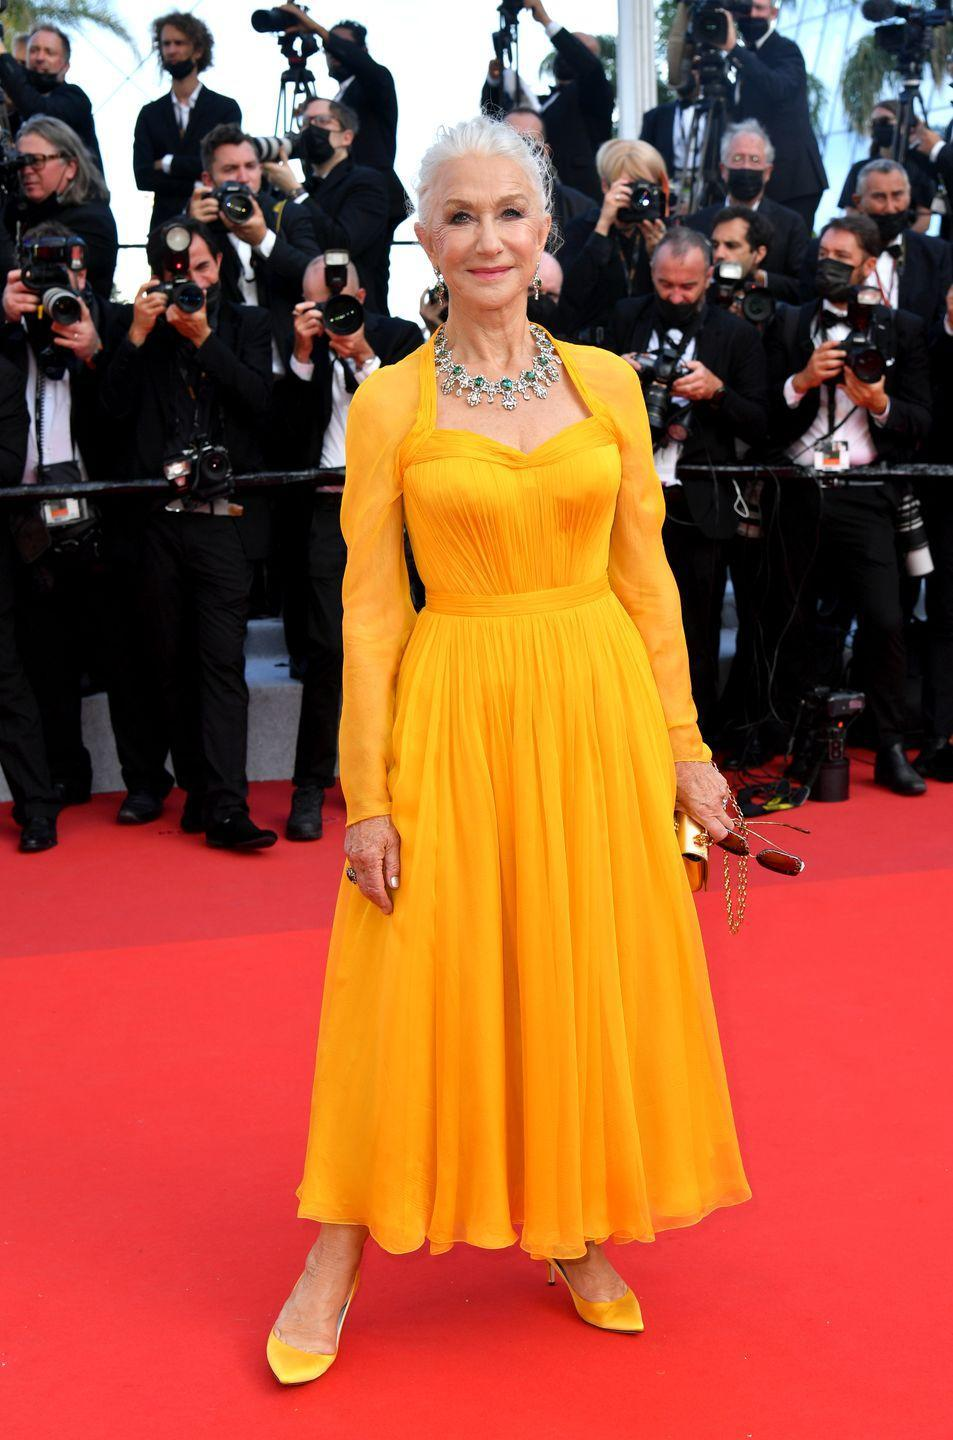 <p>Helen Mirren brought a welcome splash of colour to the proceedings in her sunny yellow dress. </p>